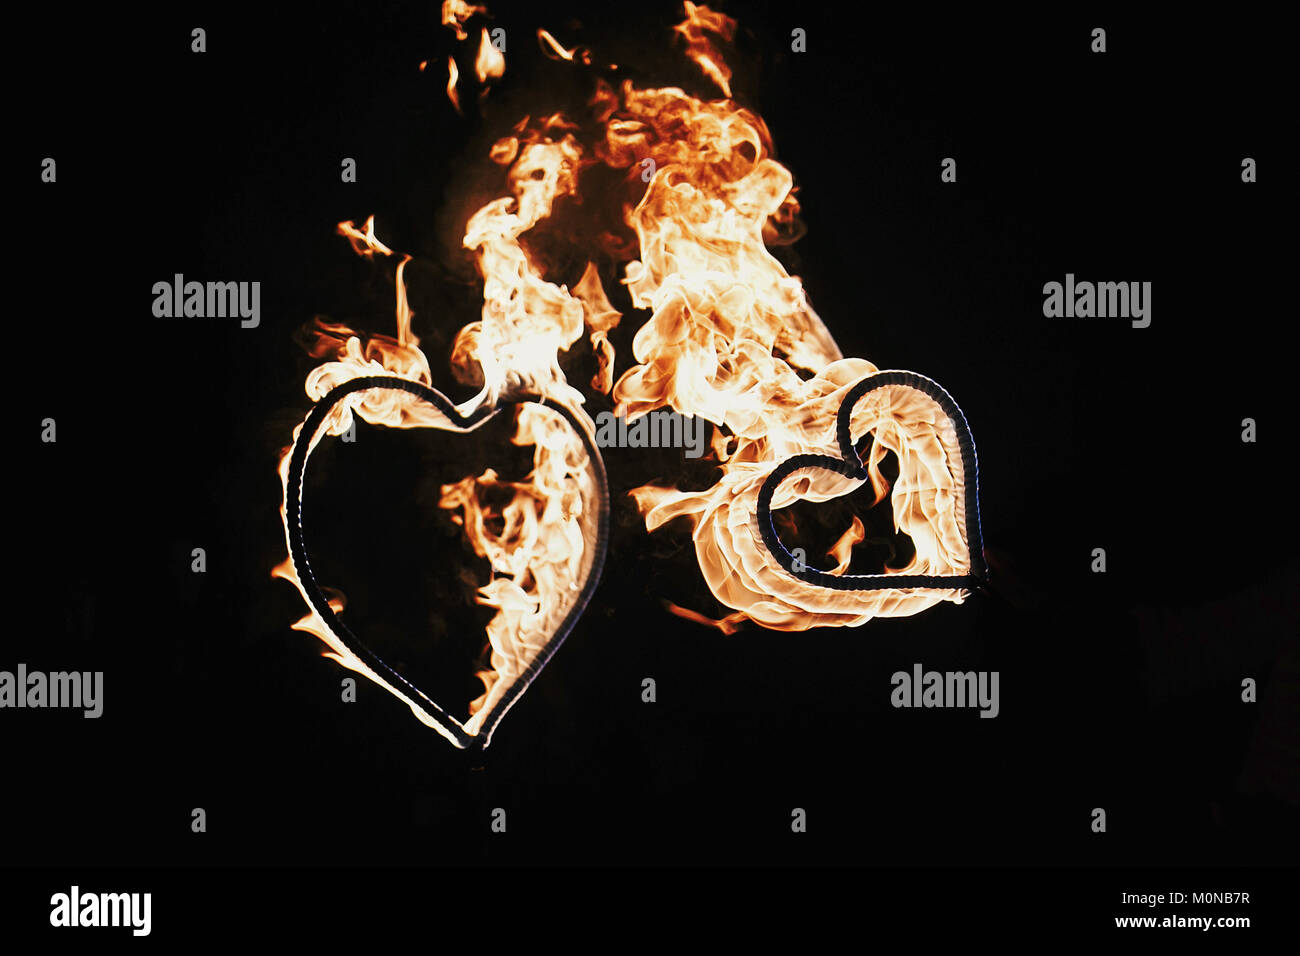 happy valentine's day card. two hearts shaped fireworks on black background, fire show in night. bengal fire burning heart. space for text. wedding or Stock Photo